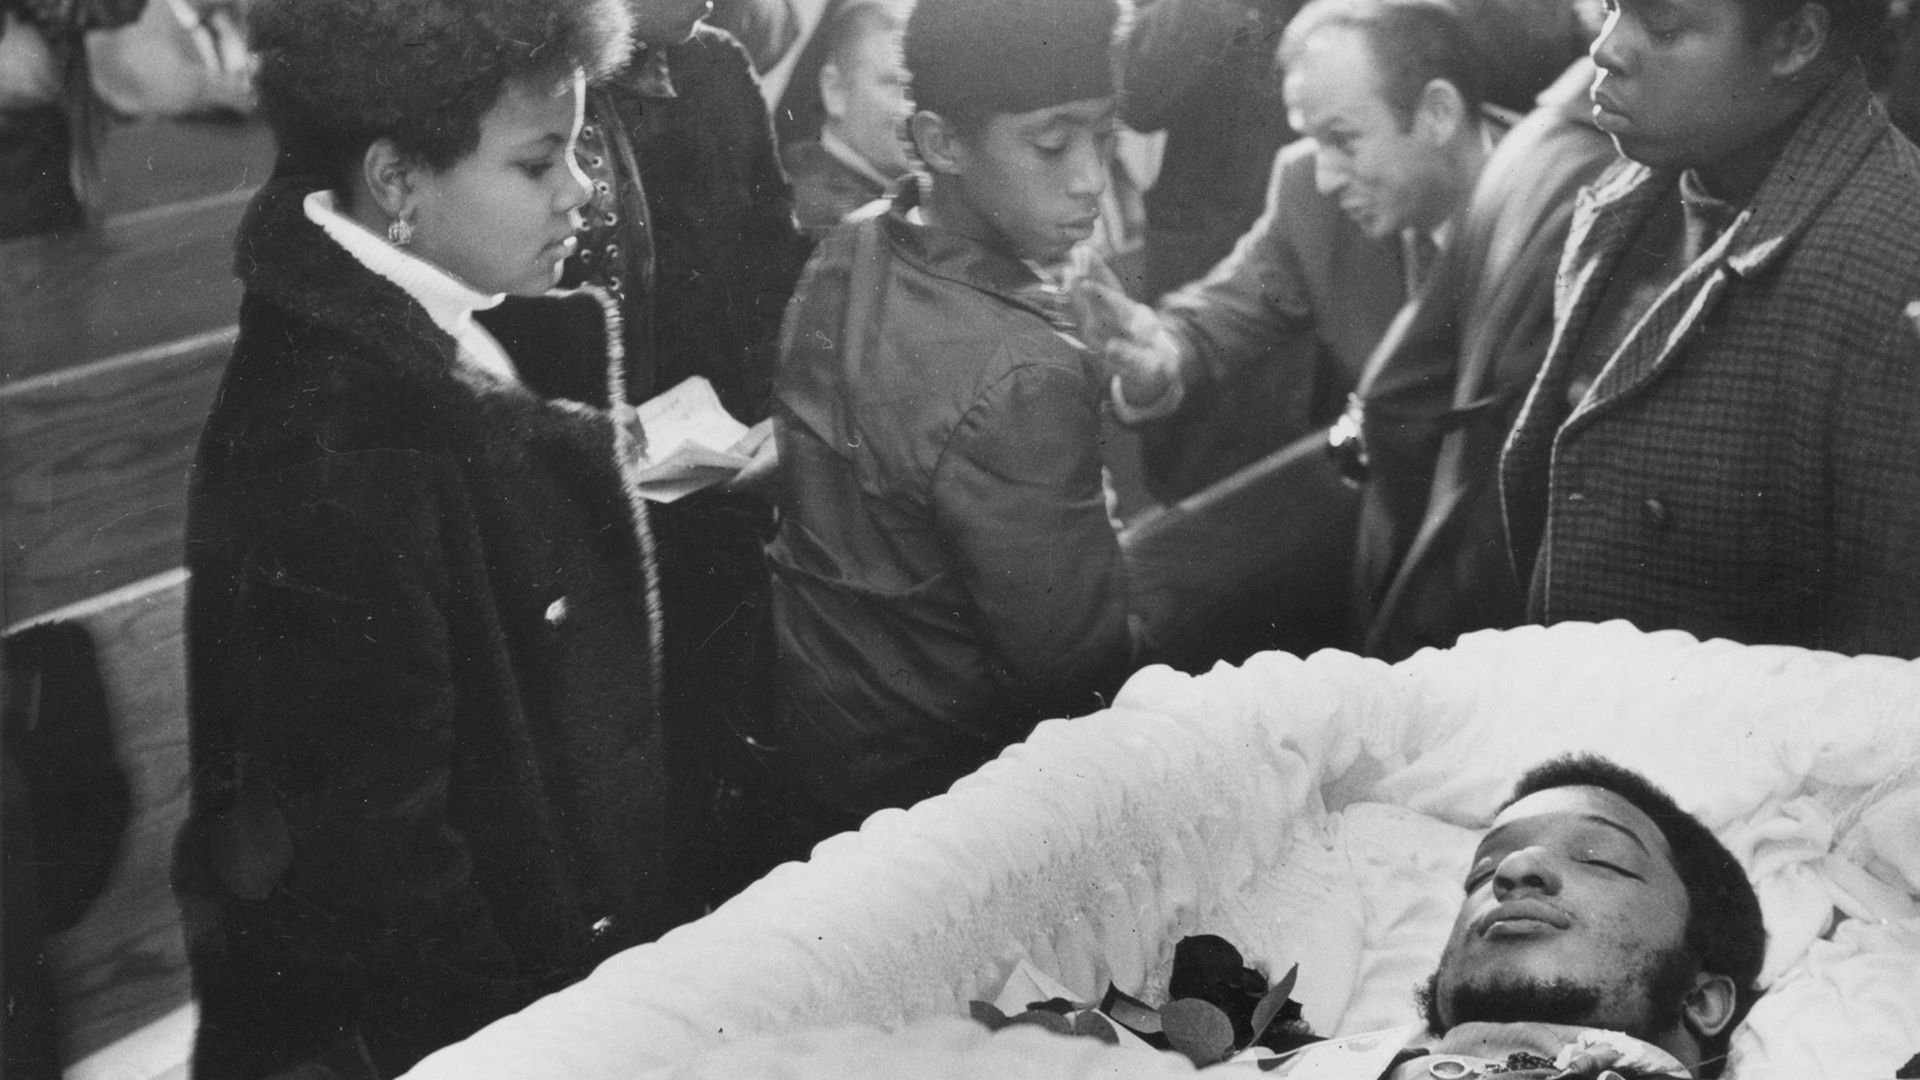 Mourners pass by the coffin of Black Panthers leader Fred Hampton at his memorial service at First Baptist Church of Melrose Park, Melrose Park, Illinois, December 9, 1969. Hampton was killed during a police raid on Dec. 4, 1969 - Credit: Ray Foster/Chicago Tribune/Tribune News Service via Getty Image